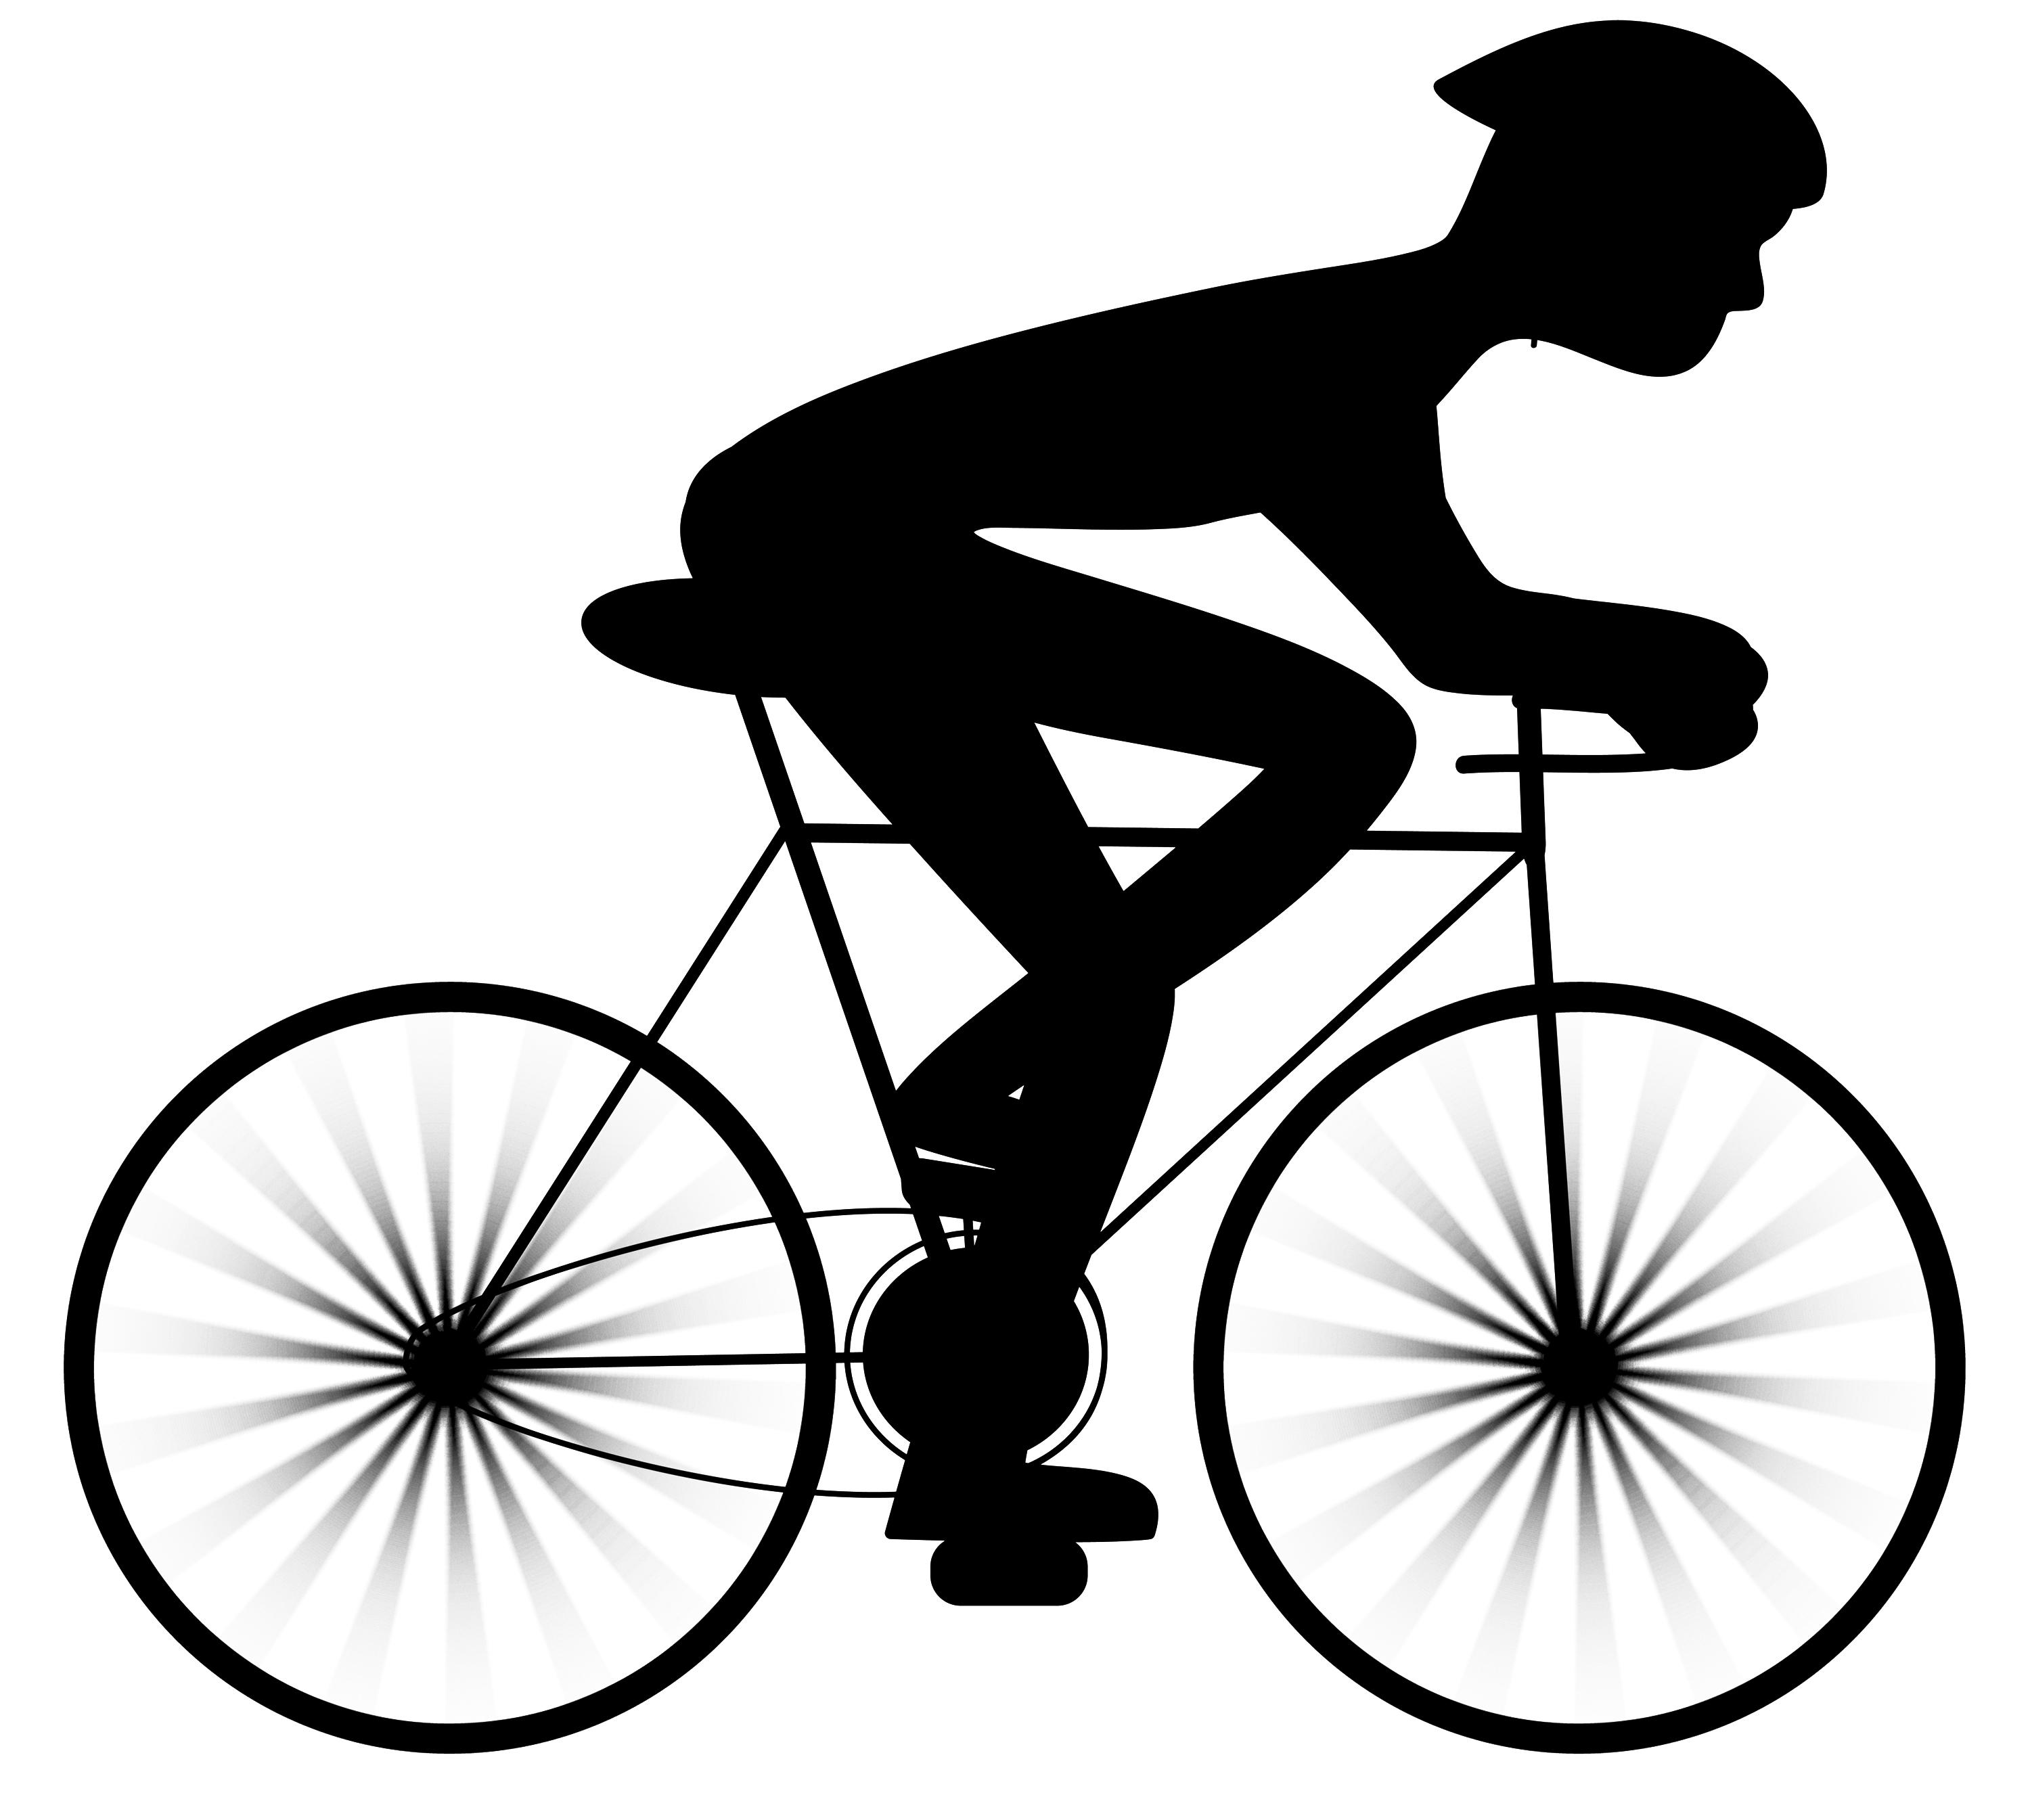 5 Things To Be On The Lookout For In Your Indoor Cycling